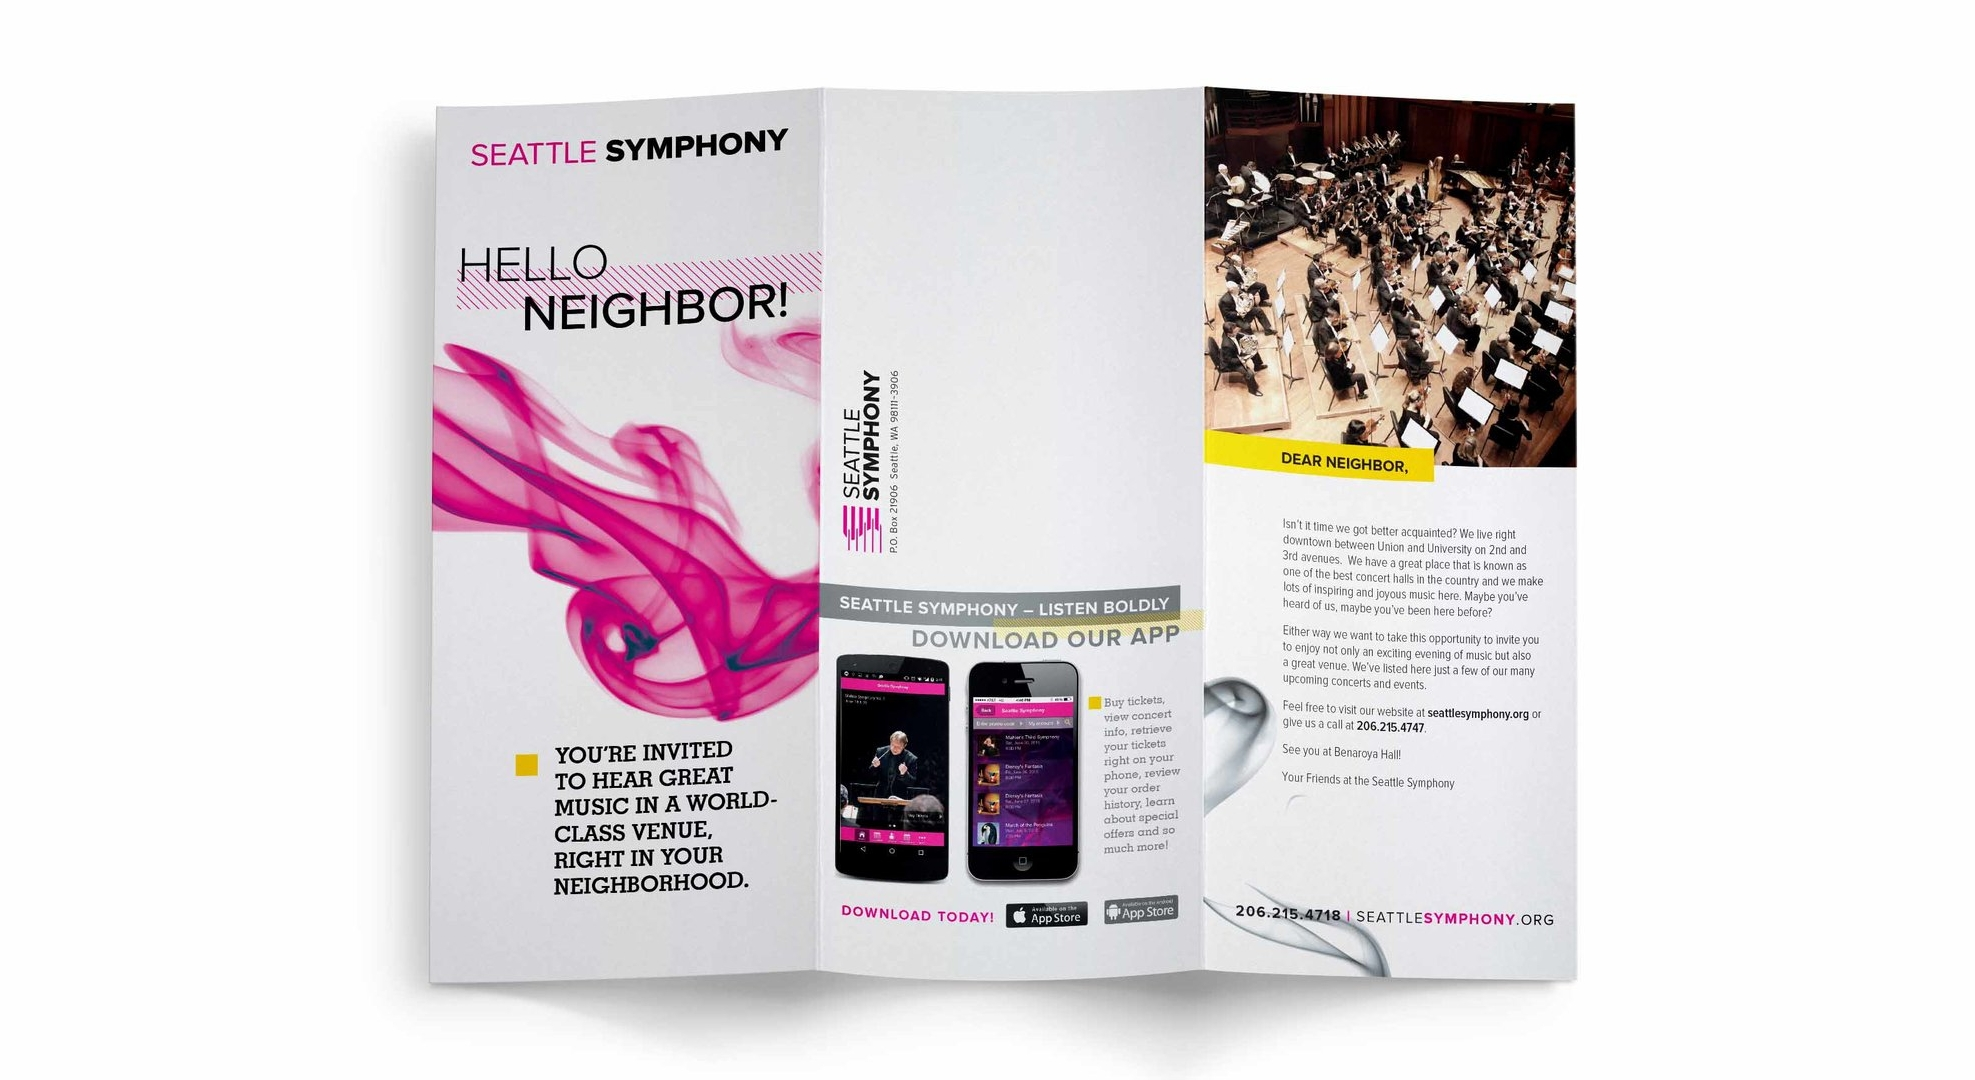 This brochure was distributed throughout Seattle to encourage subscribership while utilizing a friendly tone of voice to showcase the Symphony's inclusive community.